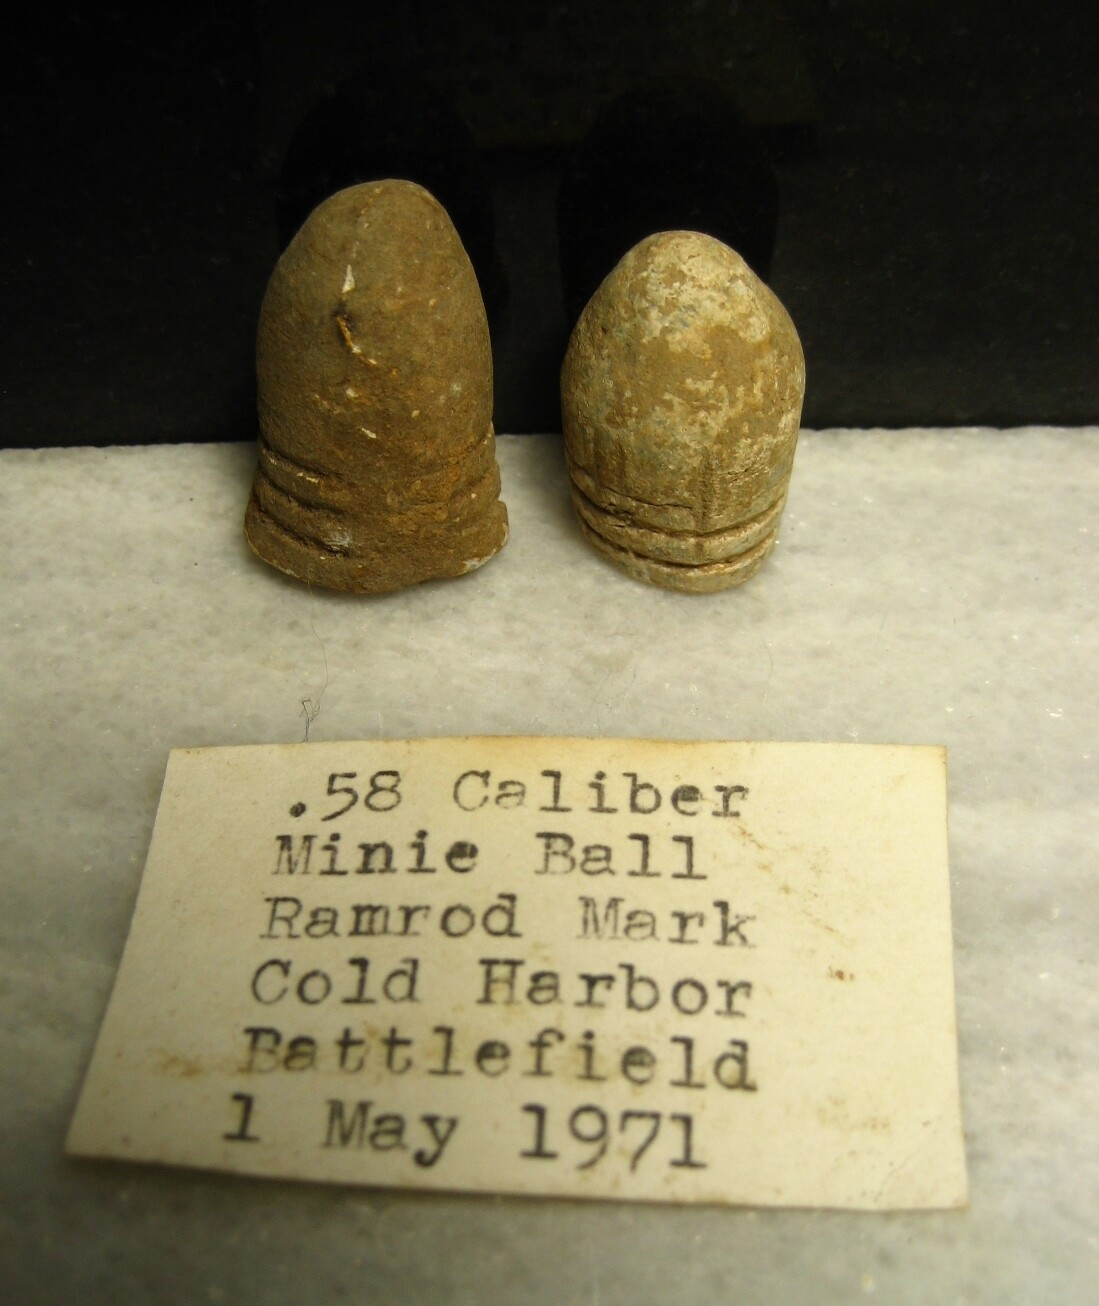 JUST ADDED ON 7/15 - THE BATTLE OF COLD HARBOR  - 2 Fired .58 Caliber Bullets with Ram Rod Marks - with Original Collection Label